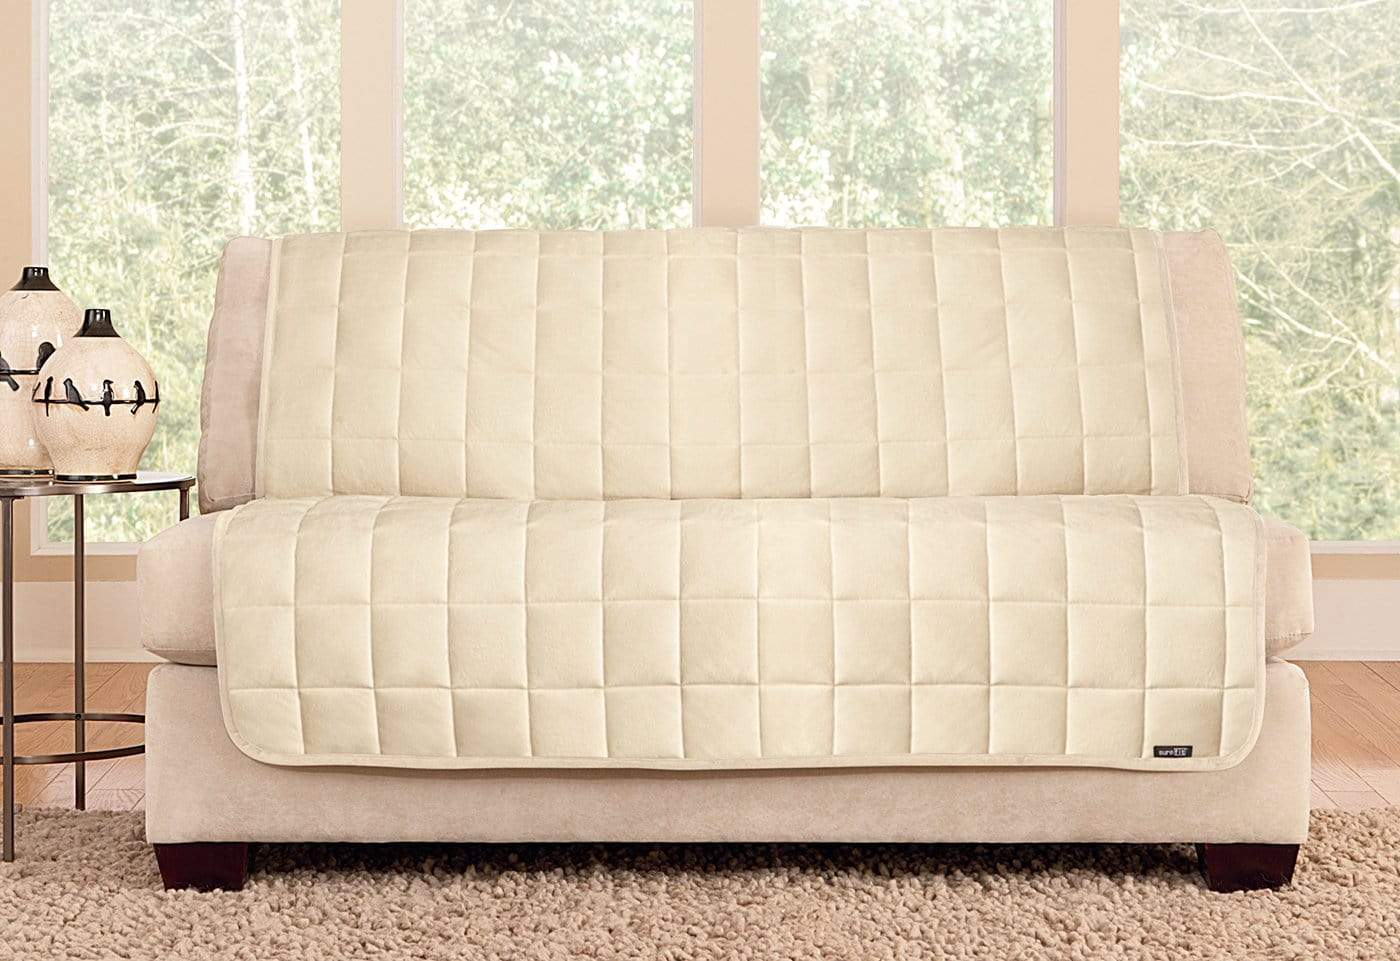 Deluxe Comfort Armless Loveseat Furniture Cover Microban® Antimicrobial Pet Furniture Cover Machine Washable - Loveseat / Ivory